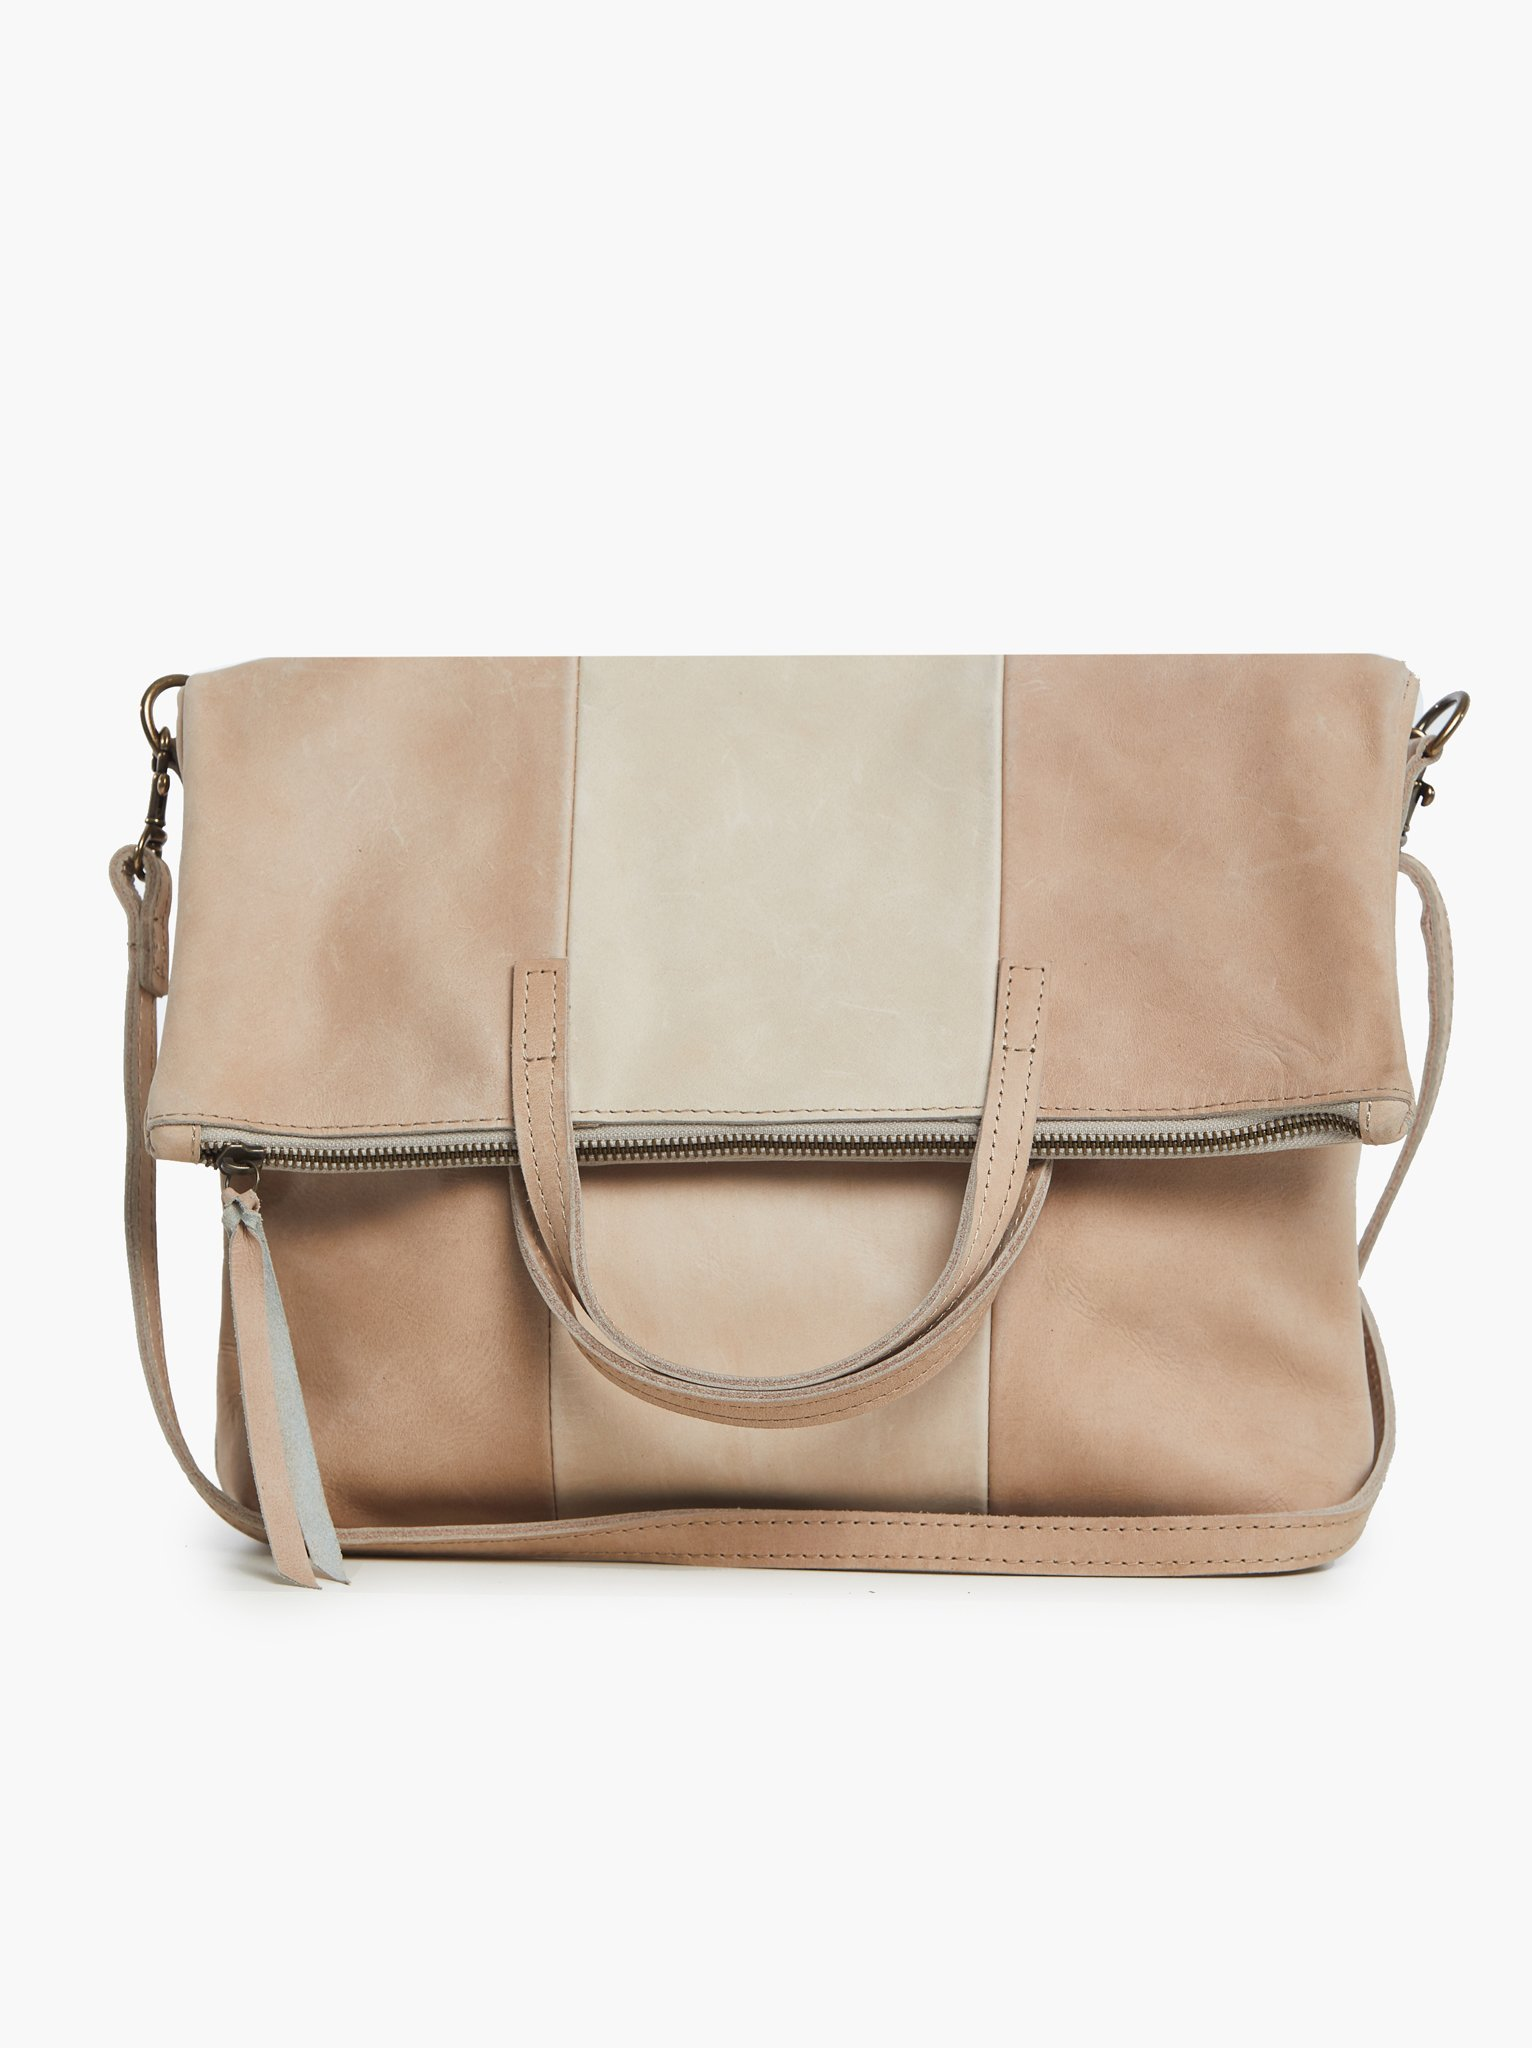 able - Emnet Foldover Tote in Fog/Bone / $198This folder tote is ethically made from ethically sourced leather and suede and provides a fair paying job to a woman in Ethiopia - oh and also it's the most delicious color ever. So many fantastic reasons to rock this bag.